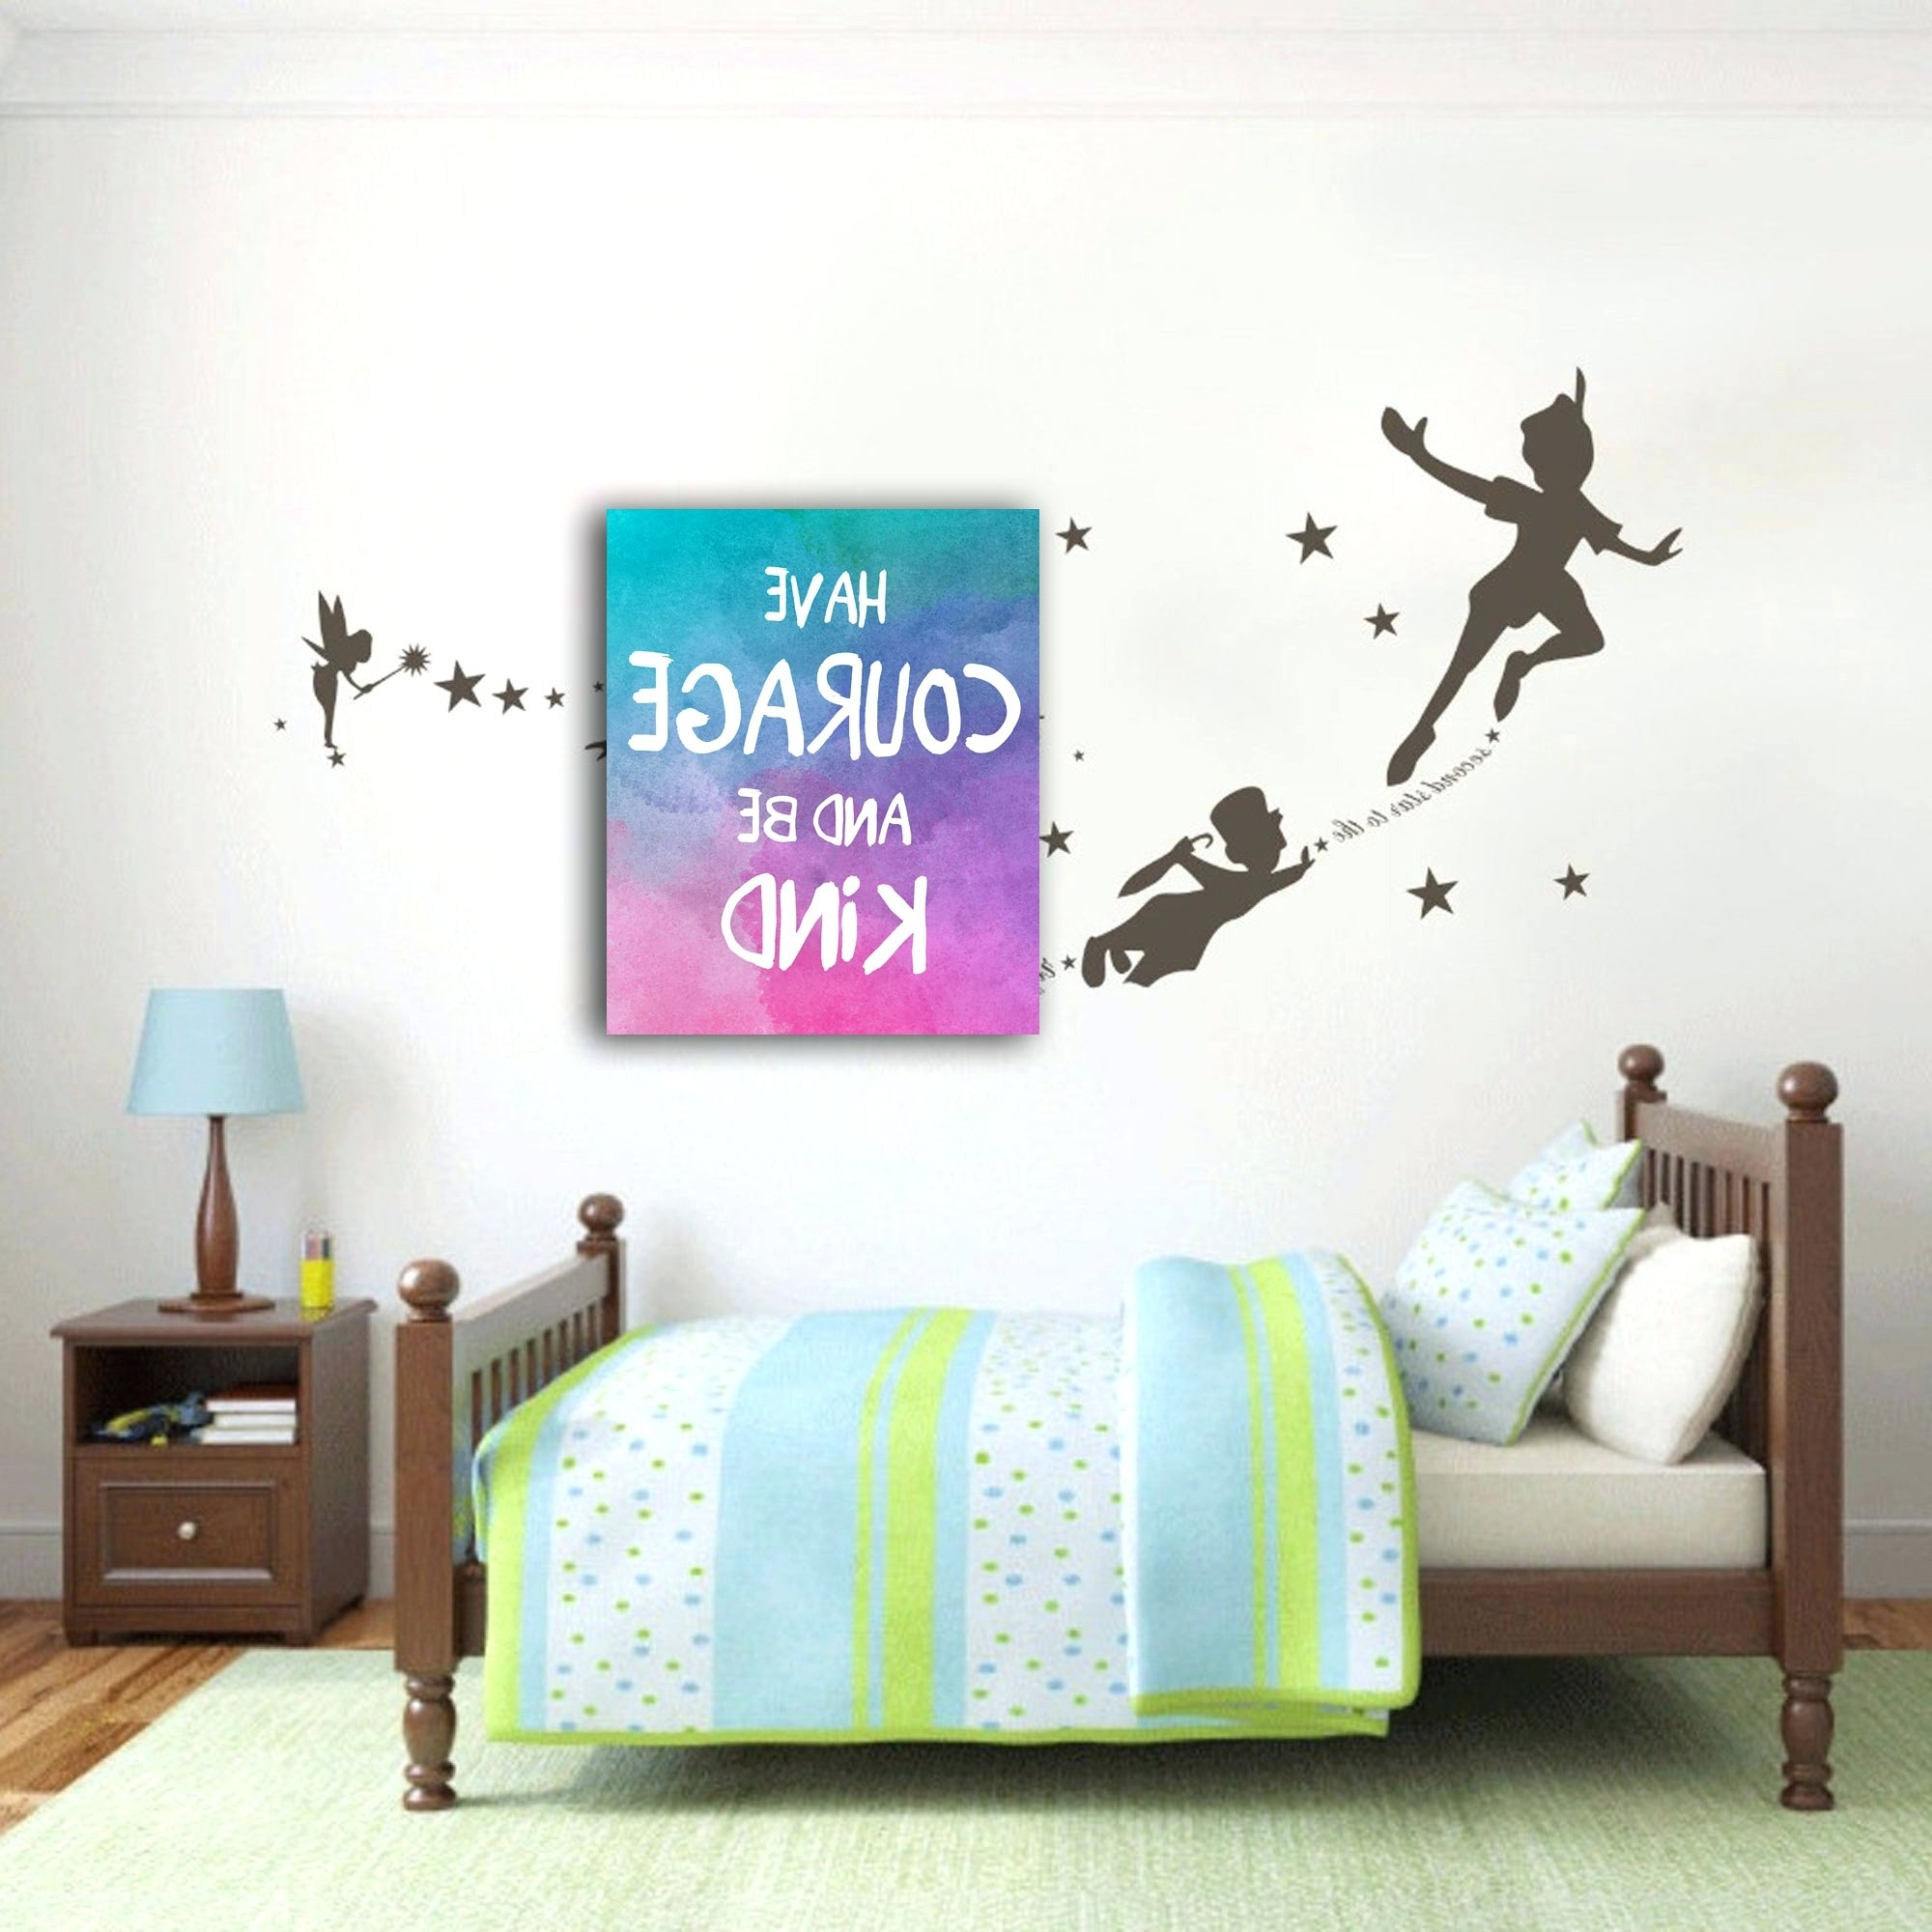 Widely Used Wall Arts ~ Large Image For Splendid Wall Design Someday Inc Within Custom Nursery Canvas Wall Art (View 12 of 15)